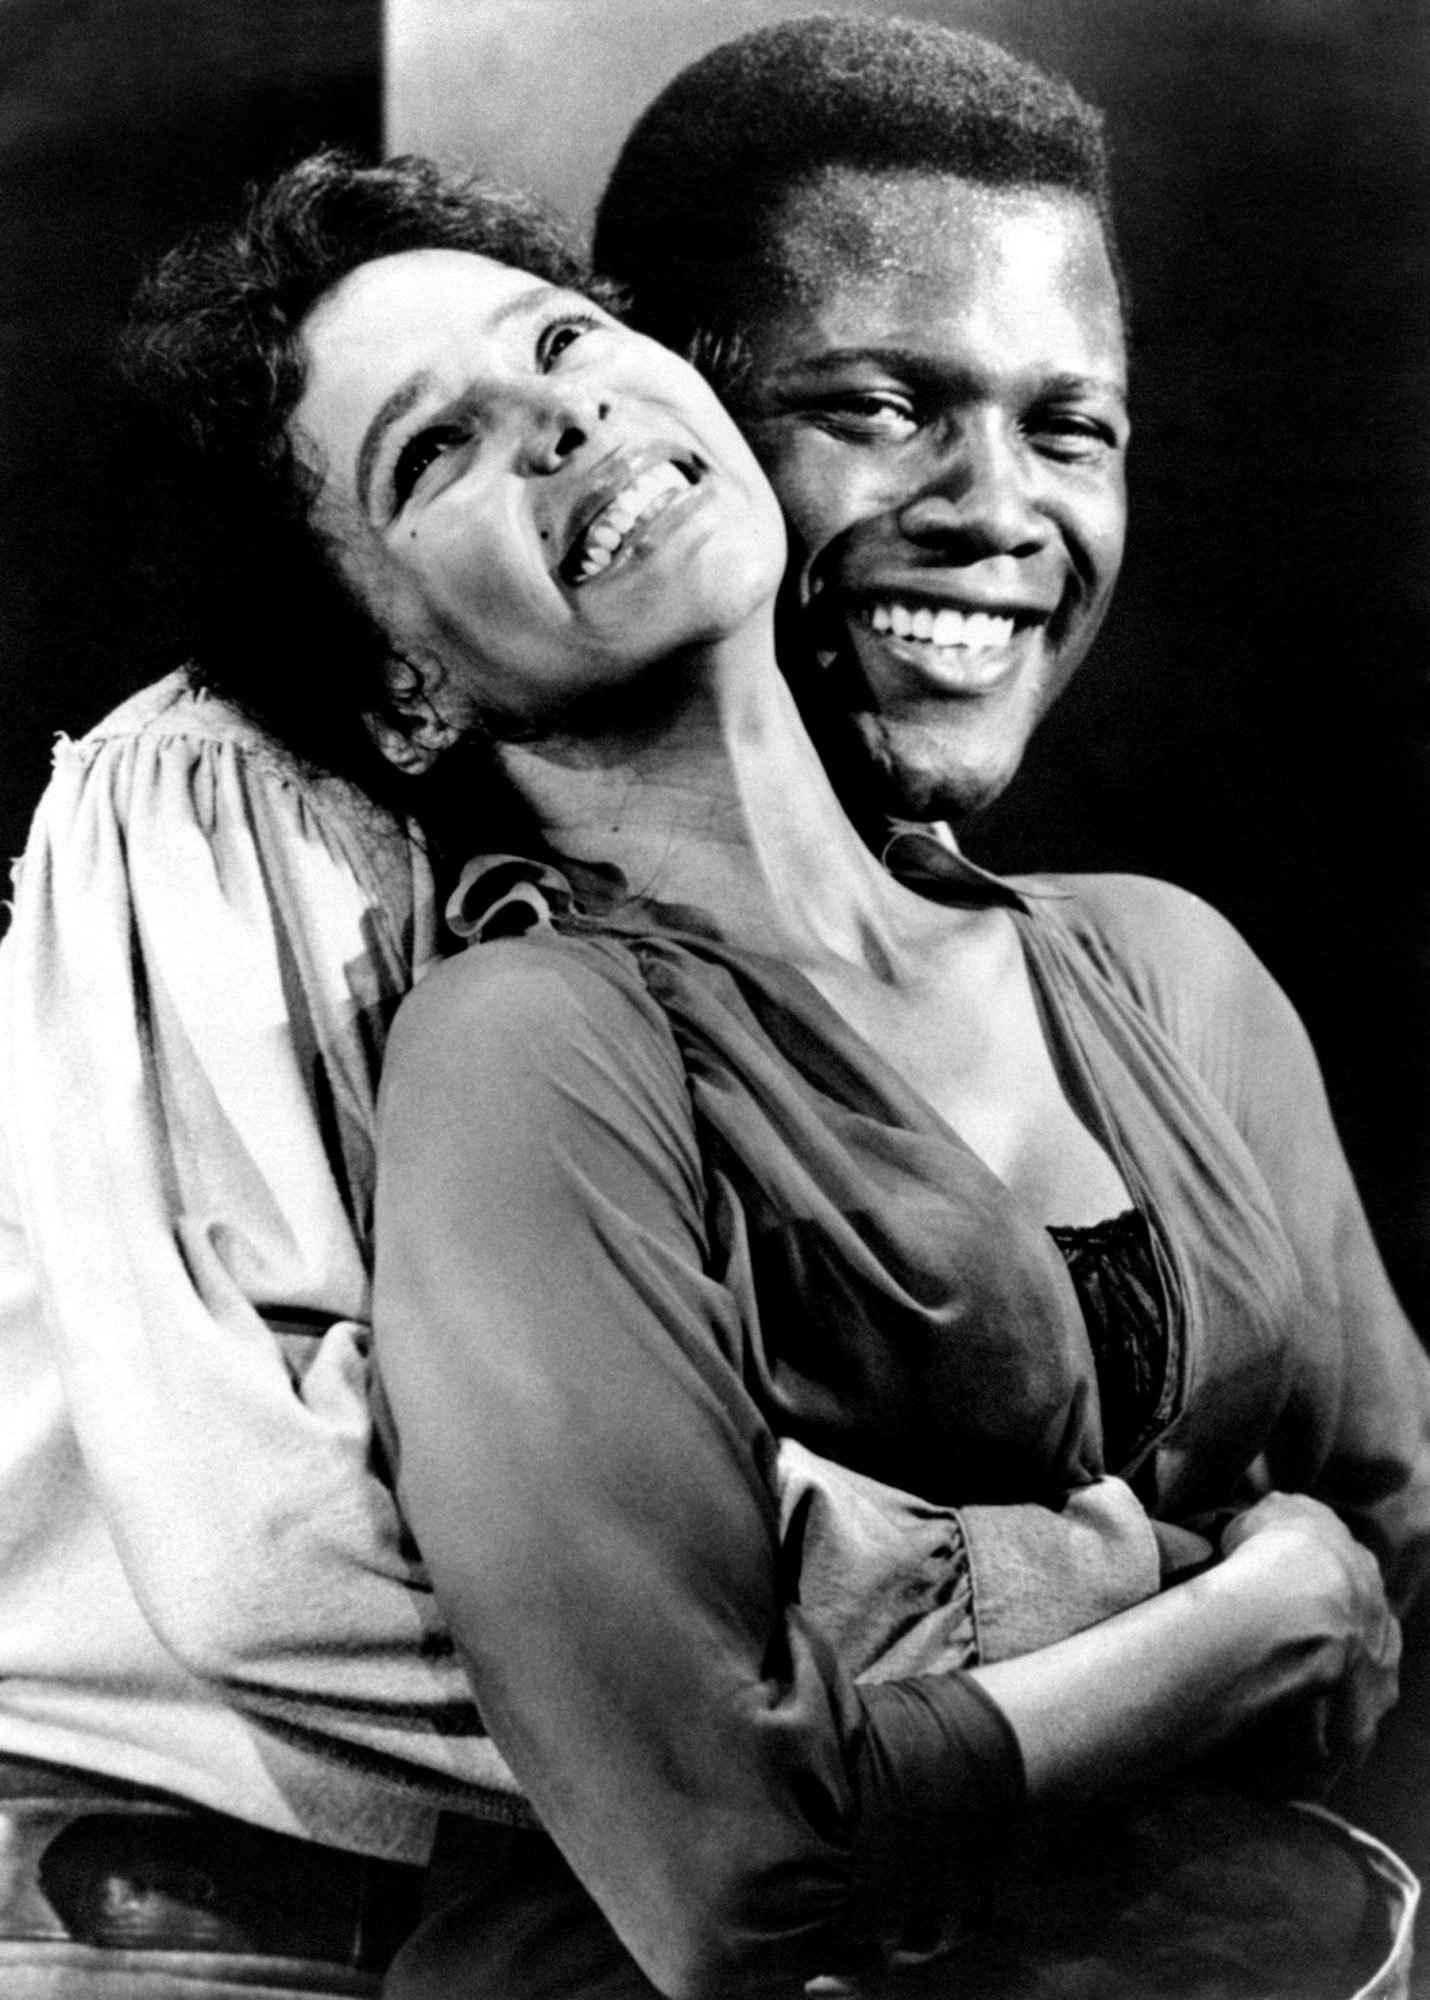 Sidney Poitier and Dorothy Jean Dandridge in Porgy and Bess